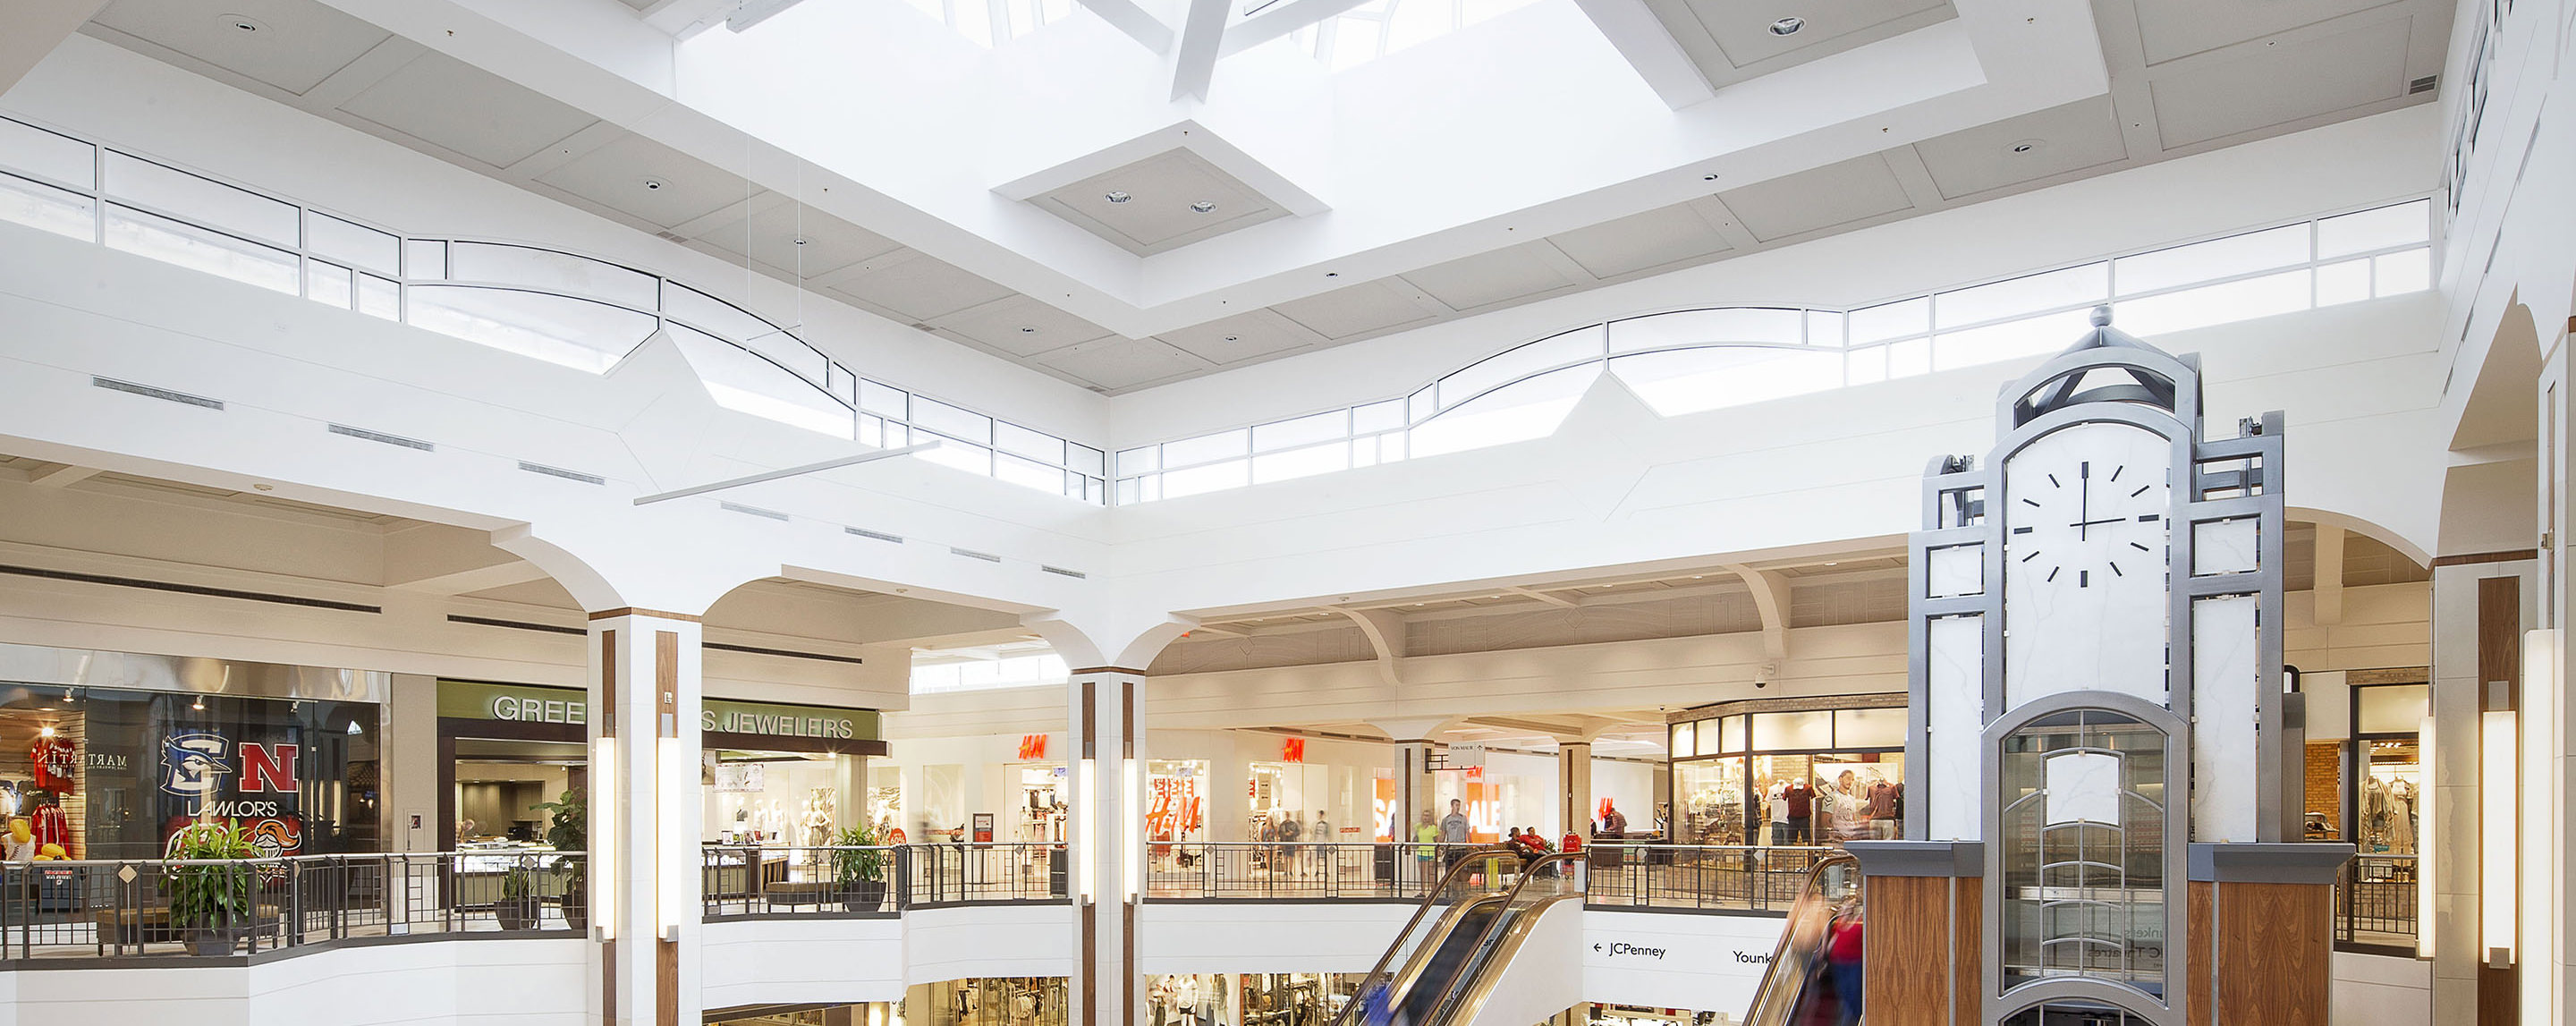 A view from the upper level of Westroads Mall shows several storefronts, escalators, and a clock above the elevator to help guests keep time.